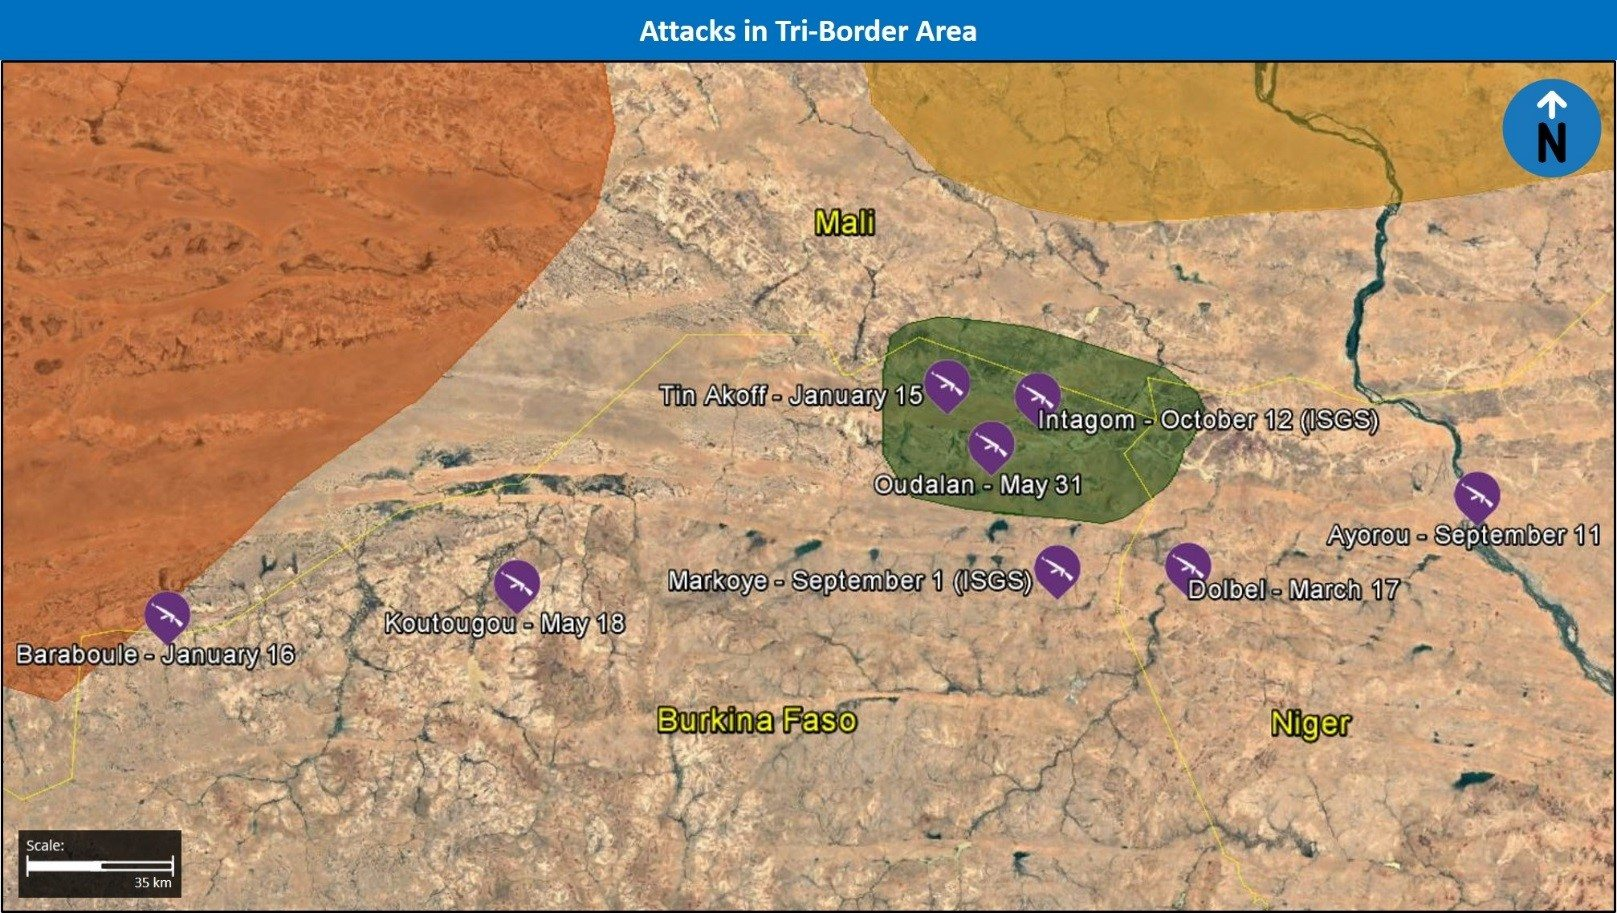 Attacks in Tri-Border Area